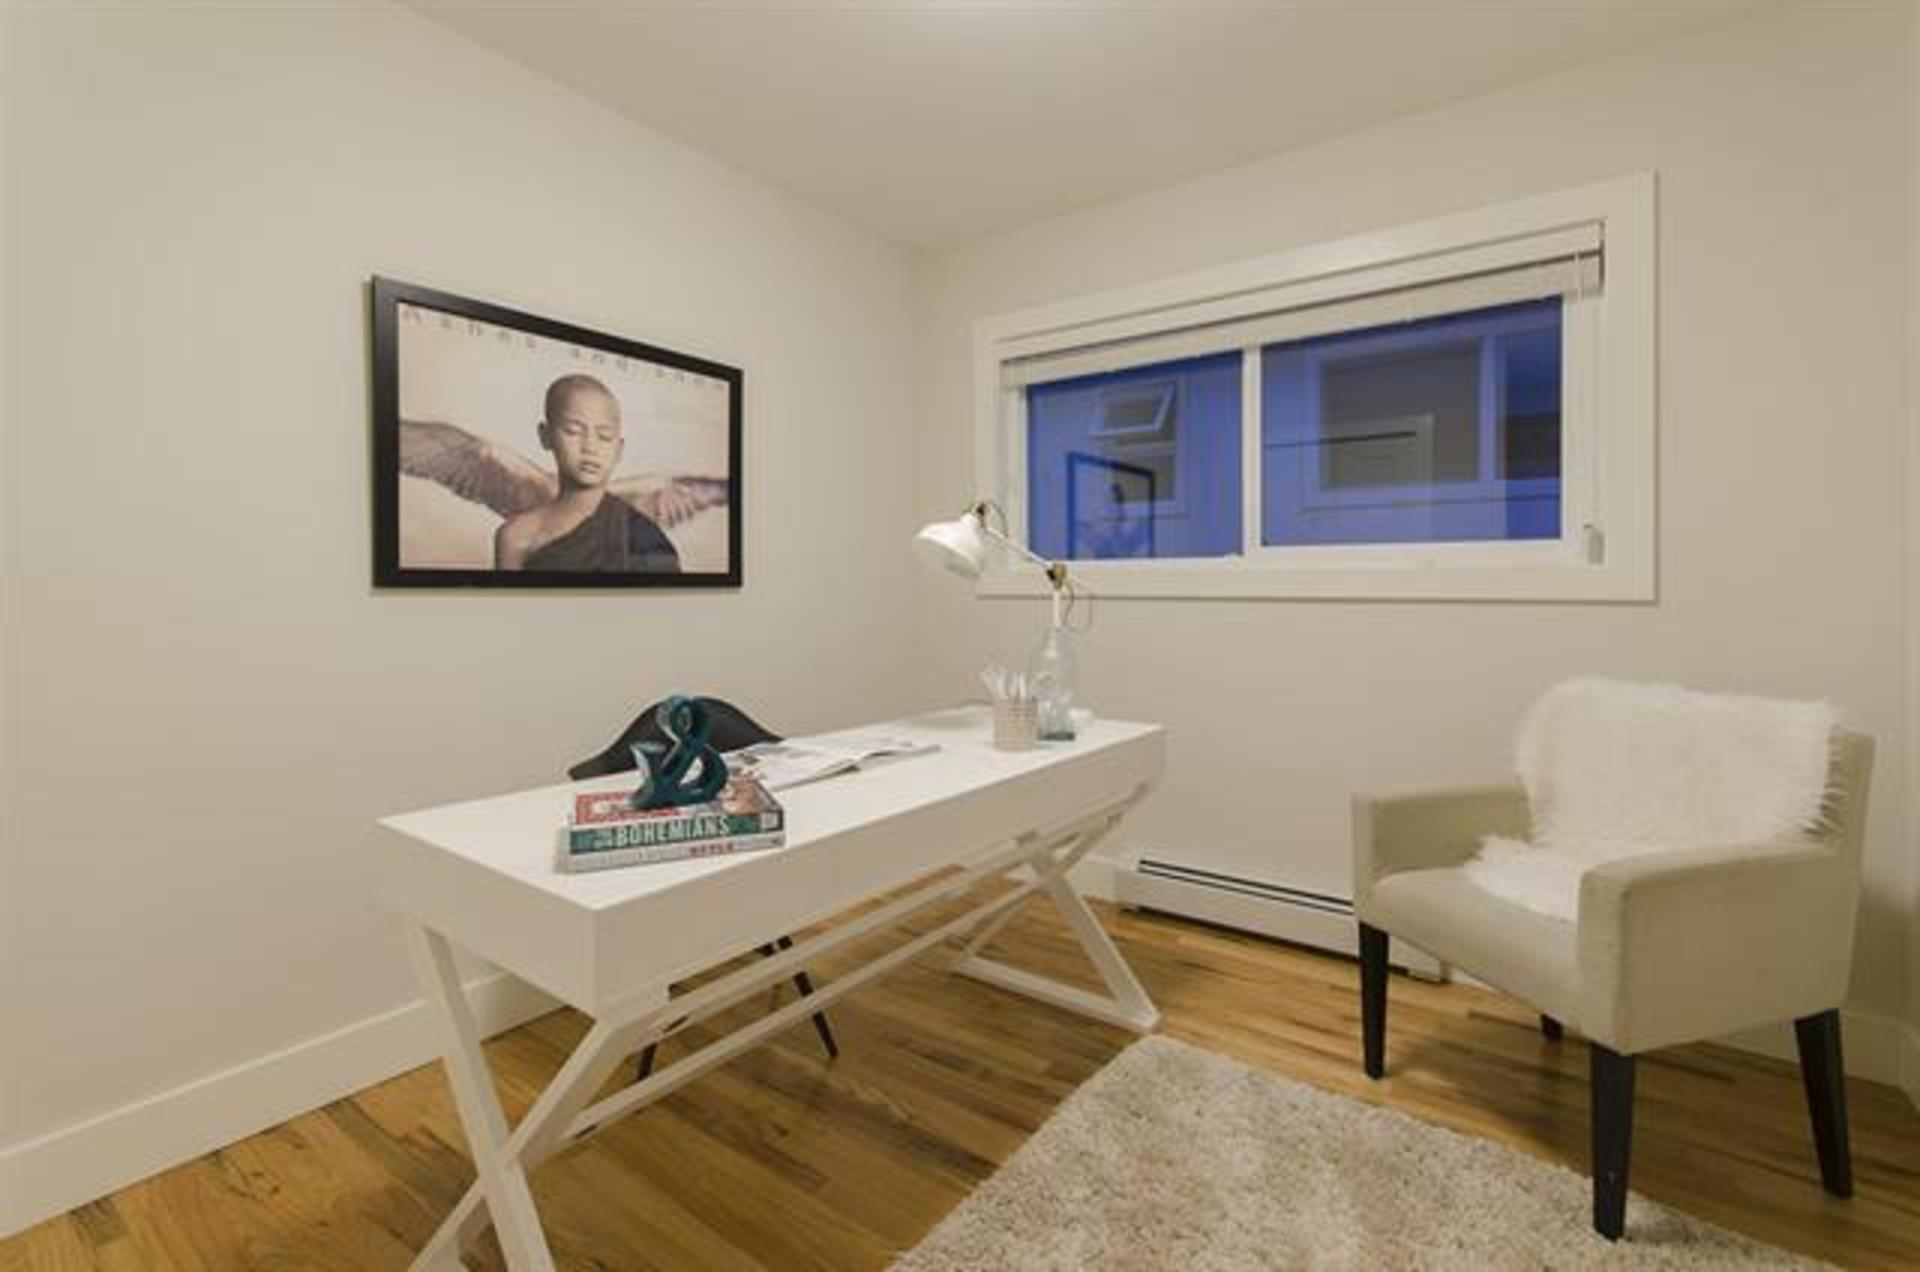 262114448-8 at 5922 Ross Street, Knight, Vancouver East